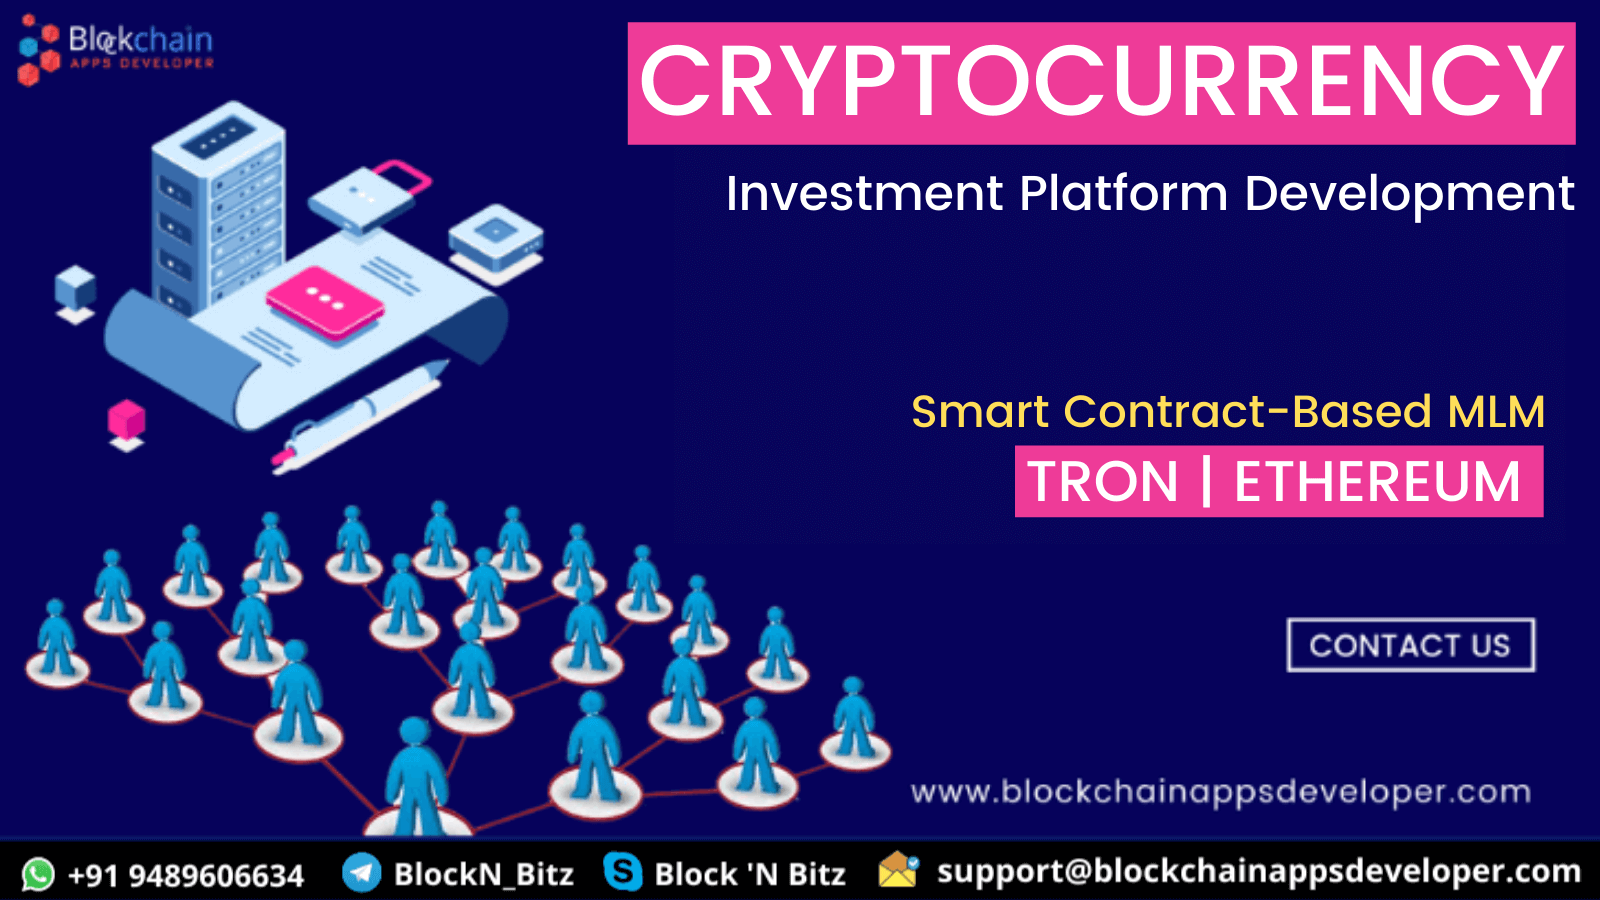 WHY DO YOU NEED TO DEVELOP A SMART CONTRACT-BASED MLM & INVESTMENT PLATFORM ON ETHEREUM / TRON NETWORK?